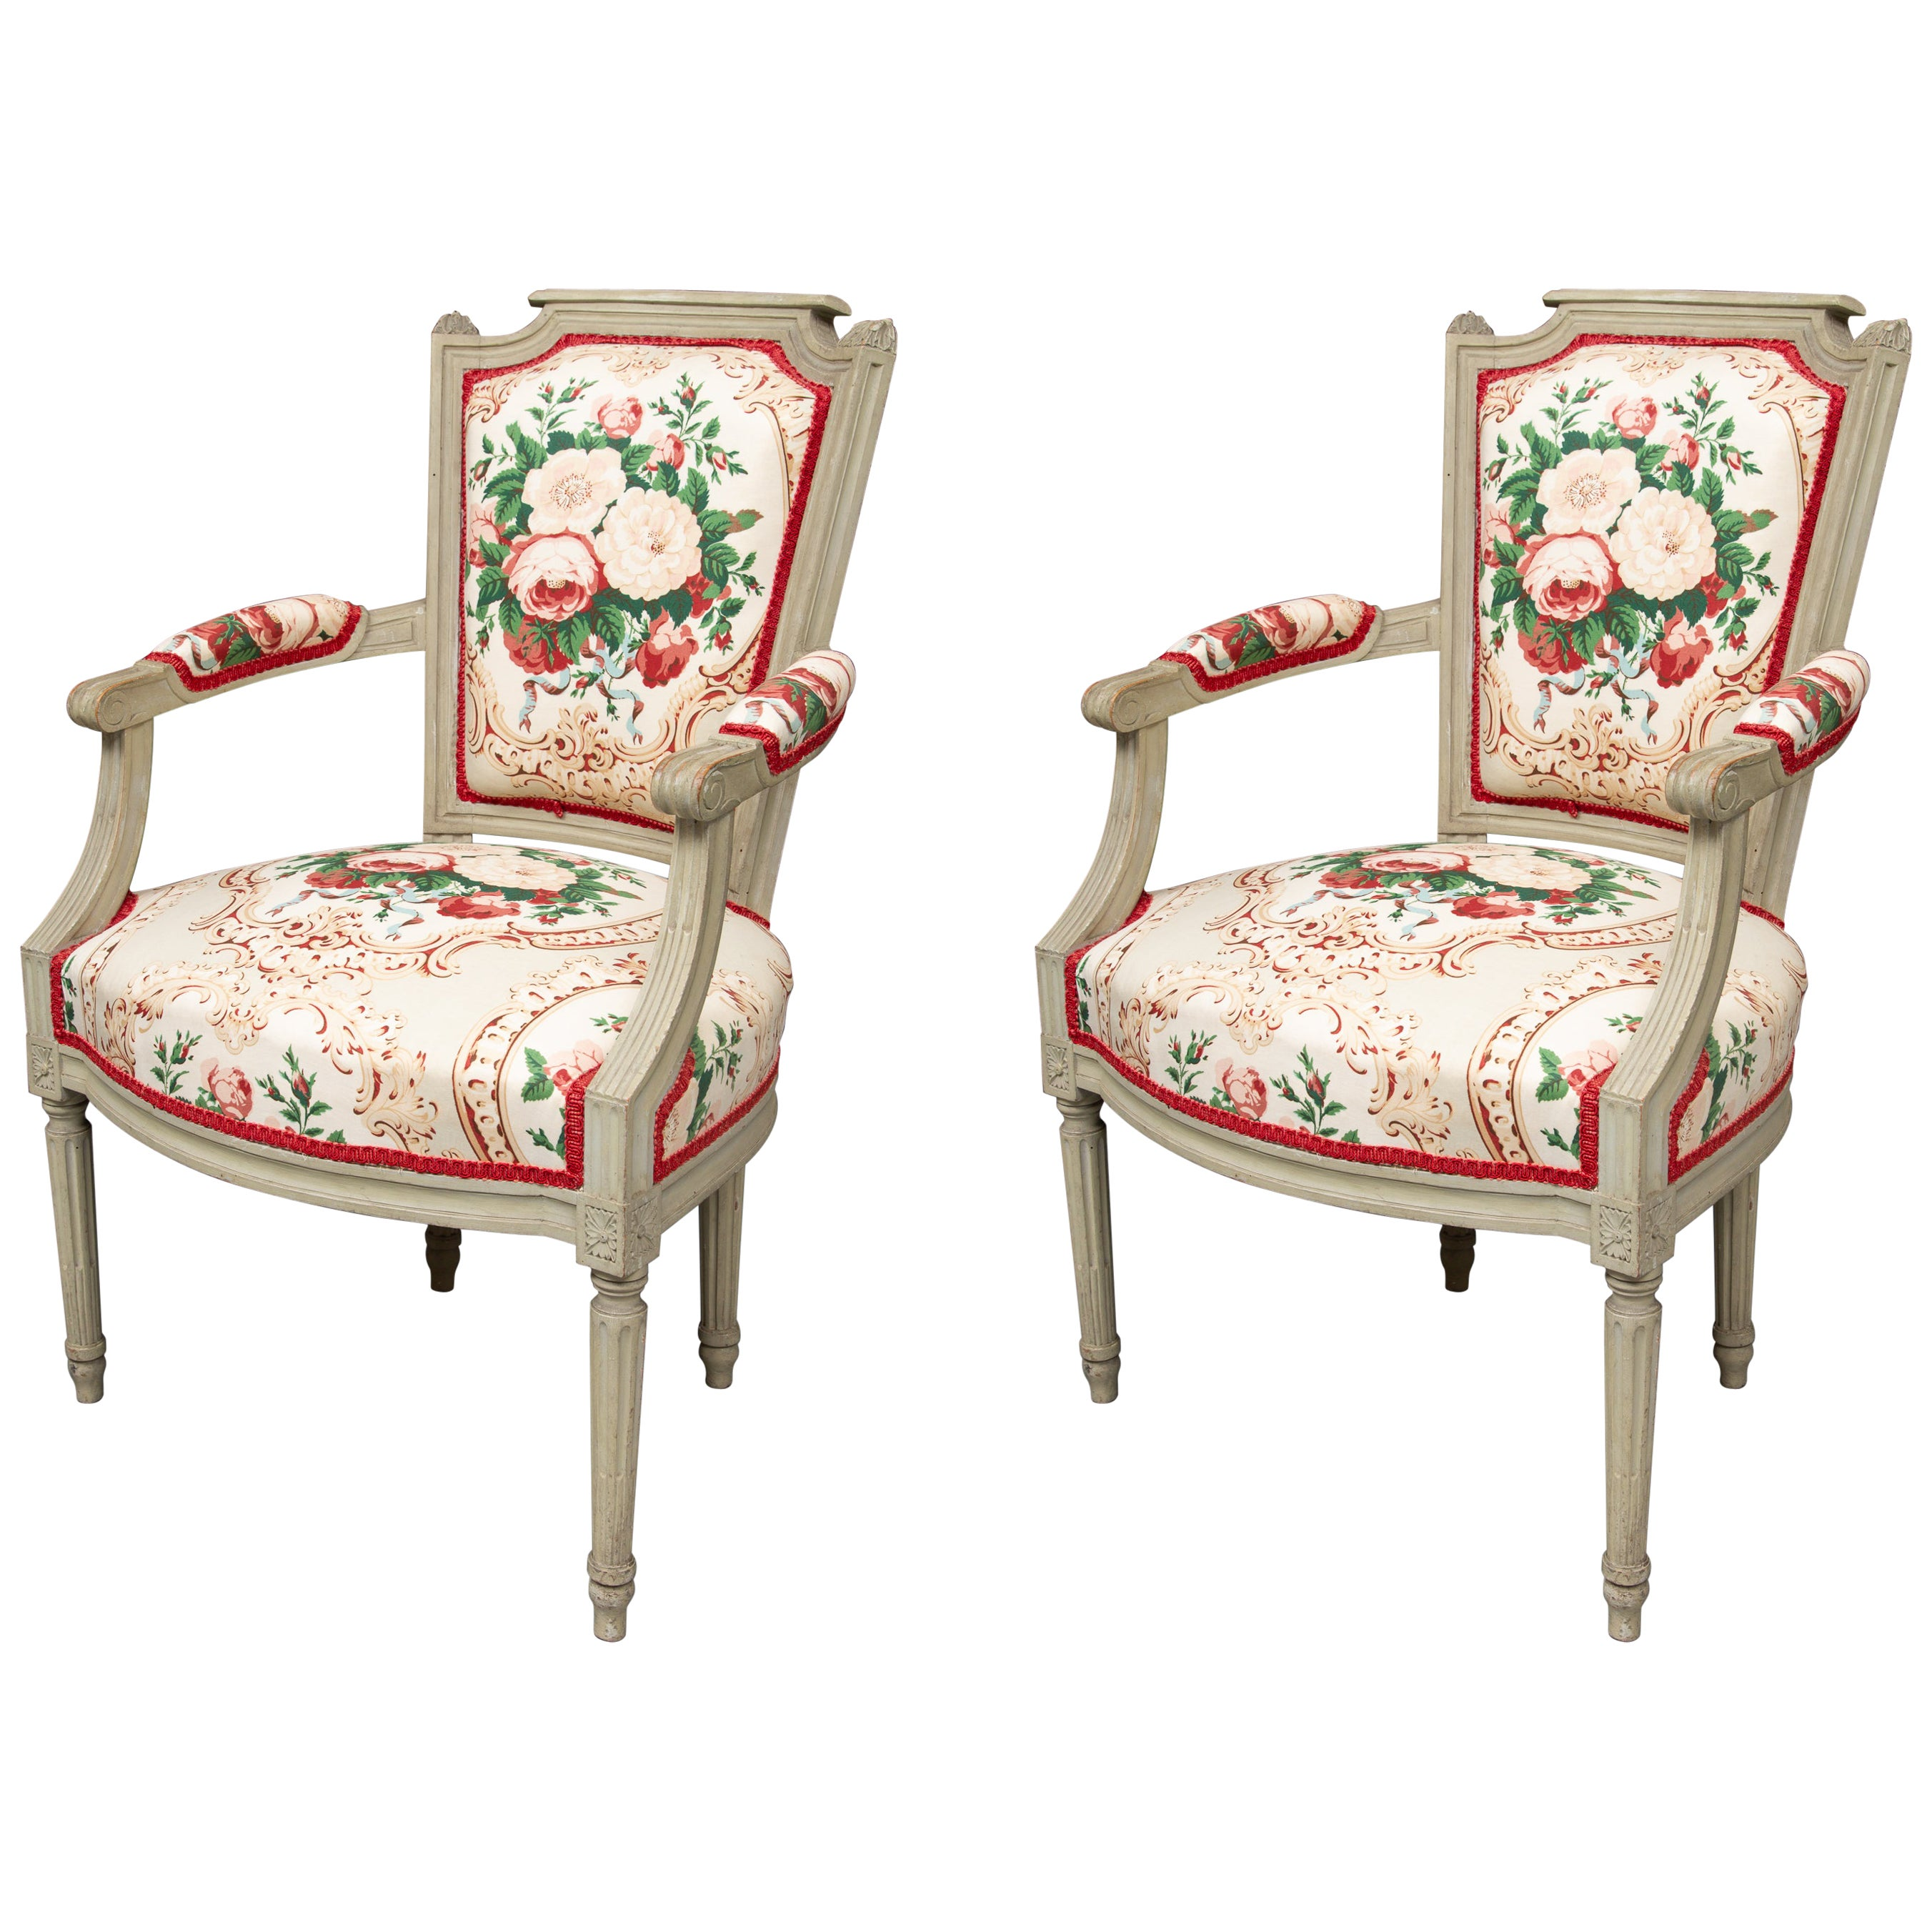 Pair of Painted Louis XVI Style Armchairs